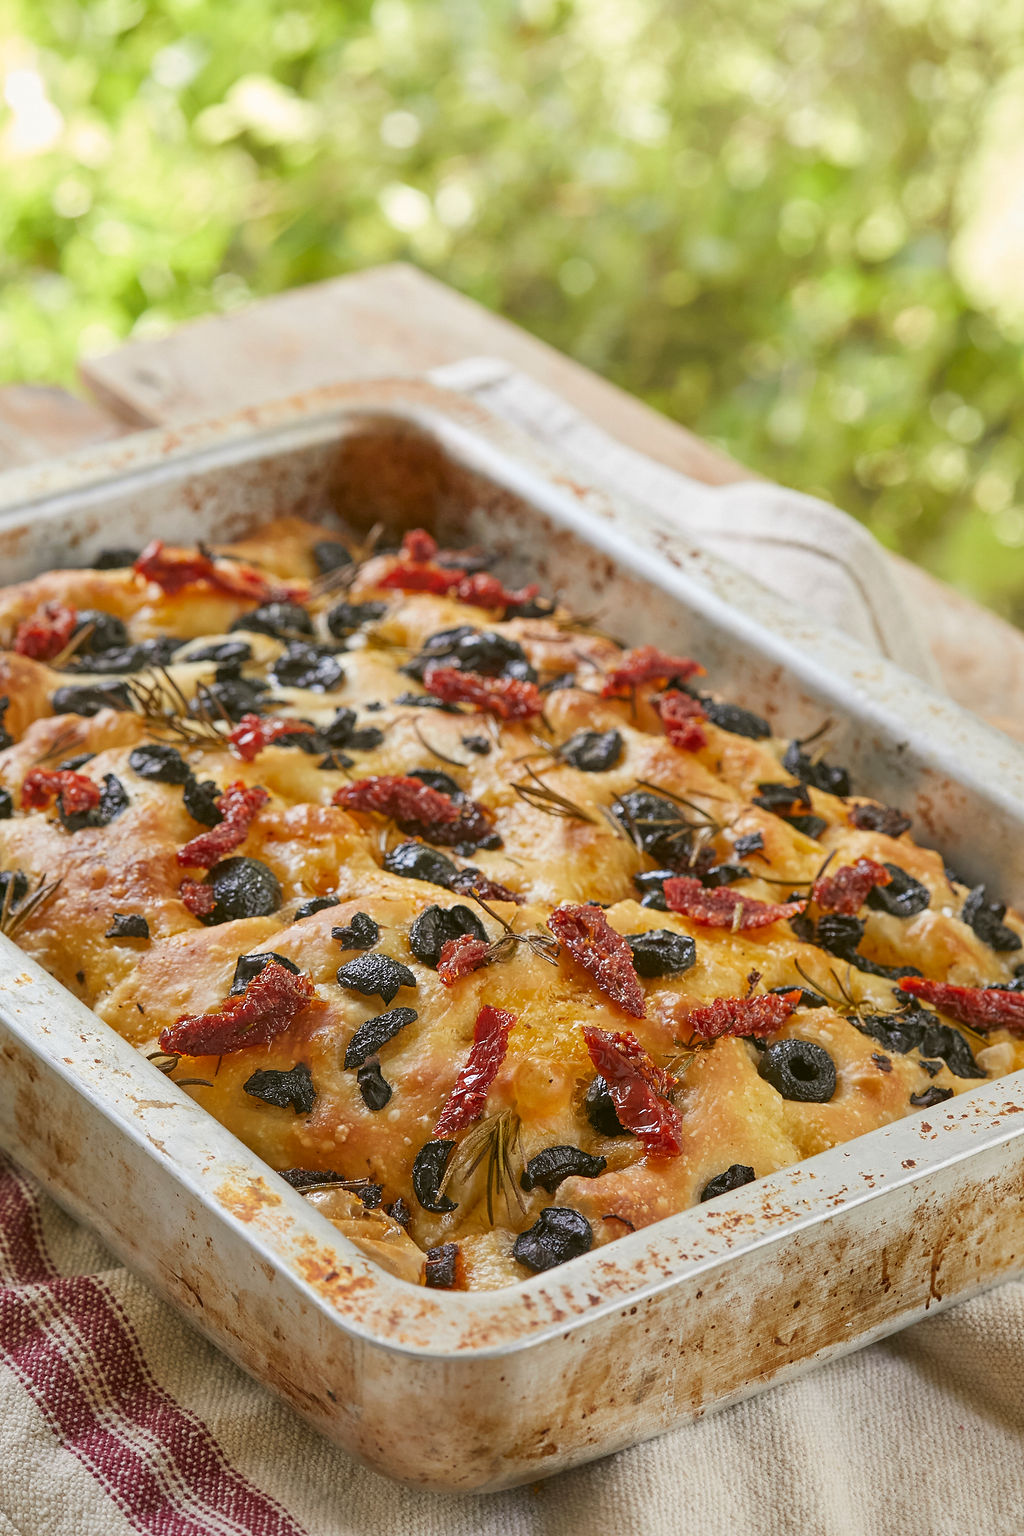 My Sourdough Focaccia baked and ready to cut into slices, topped with olives and sun-dried tomatoes.